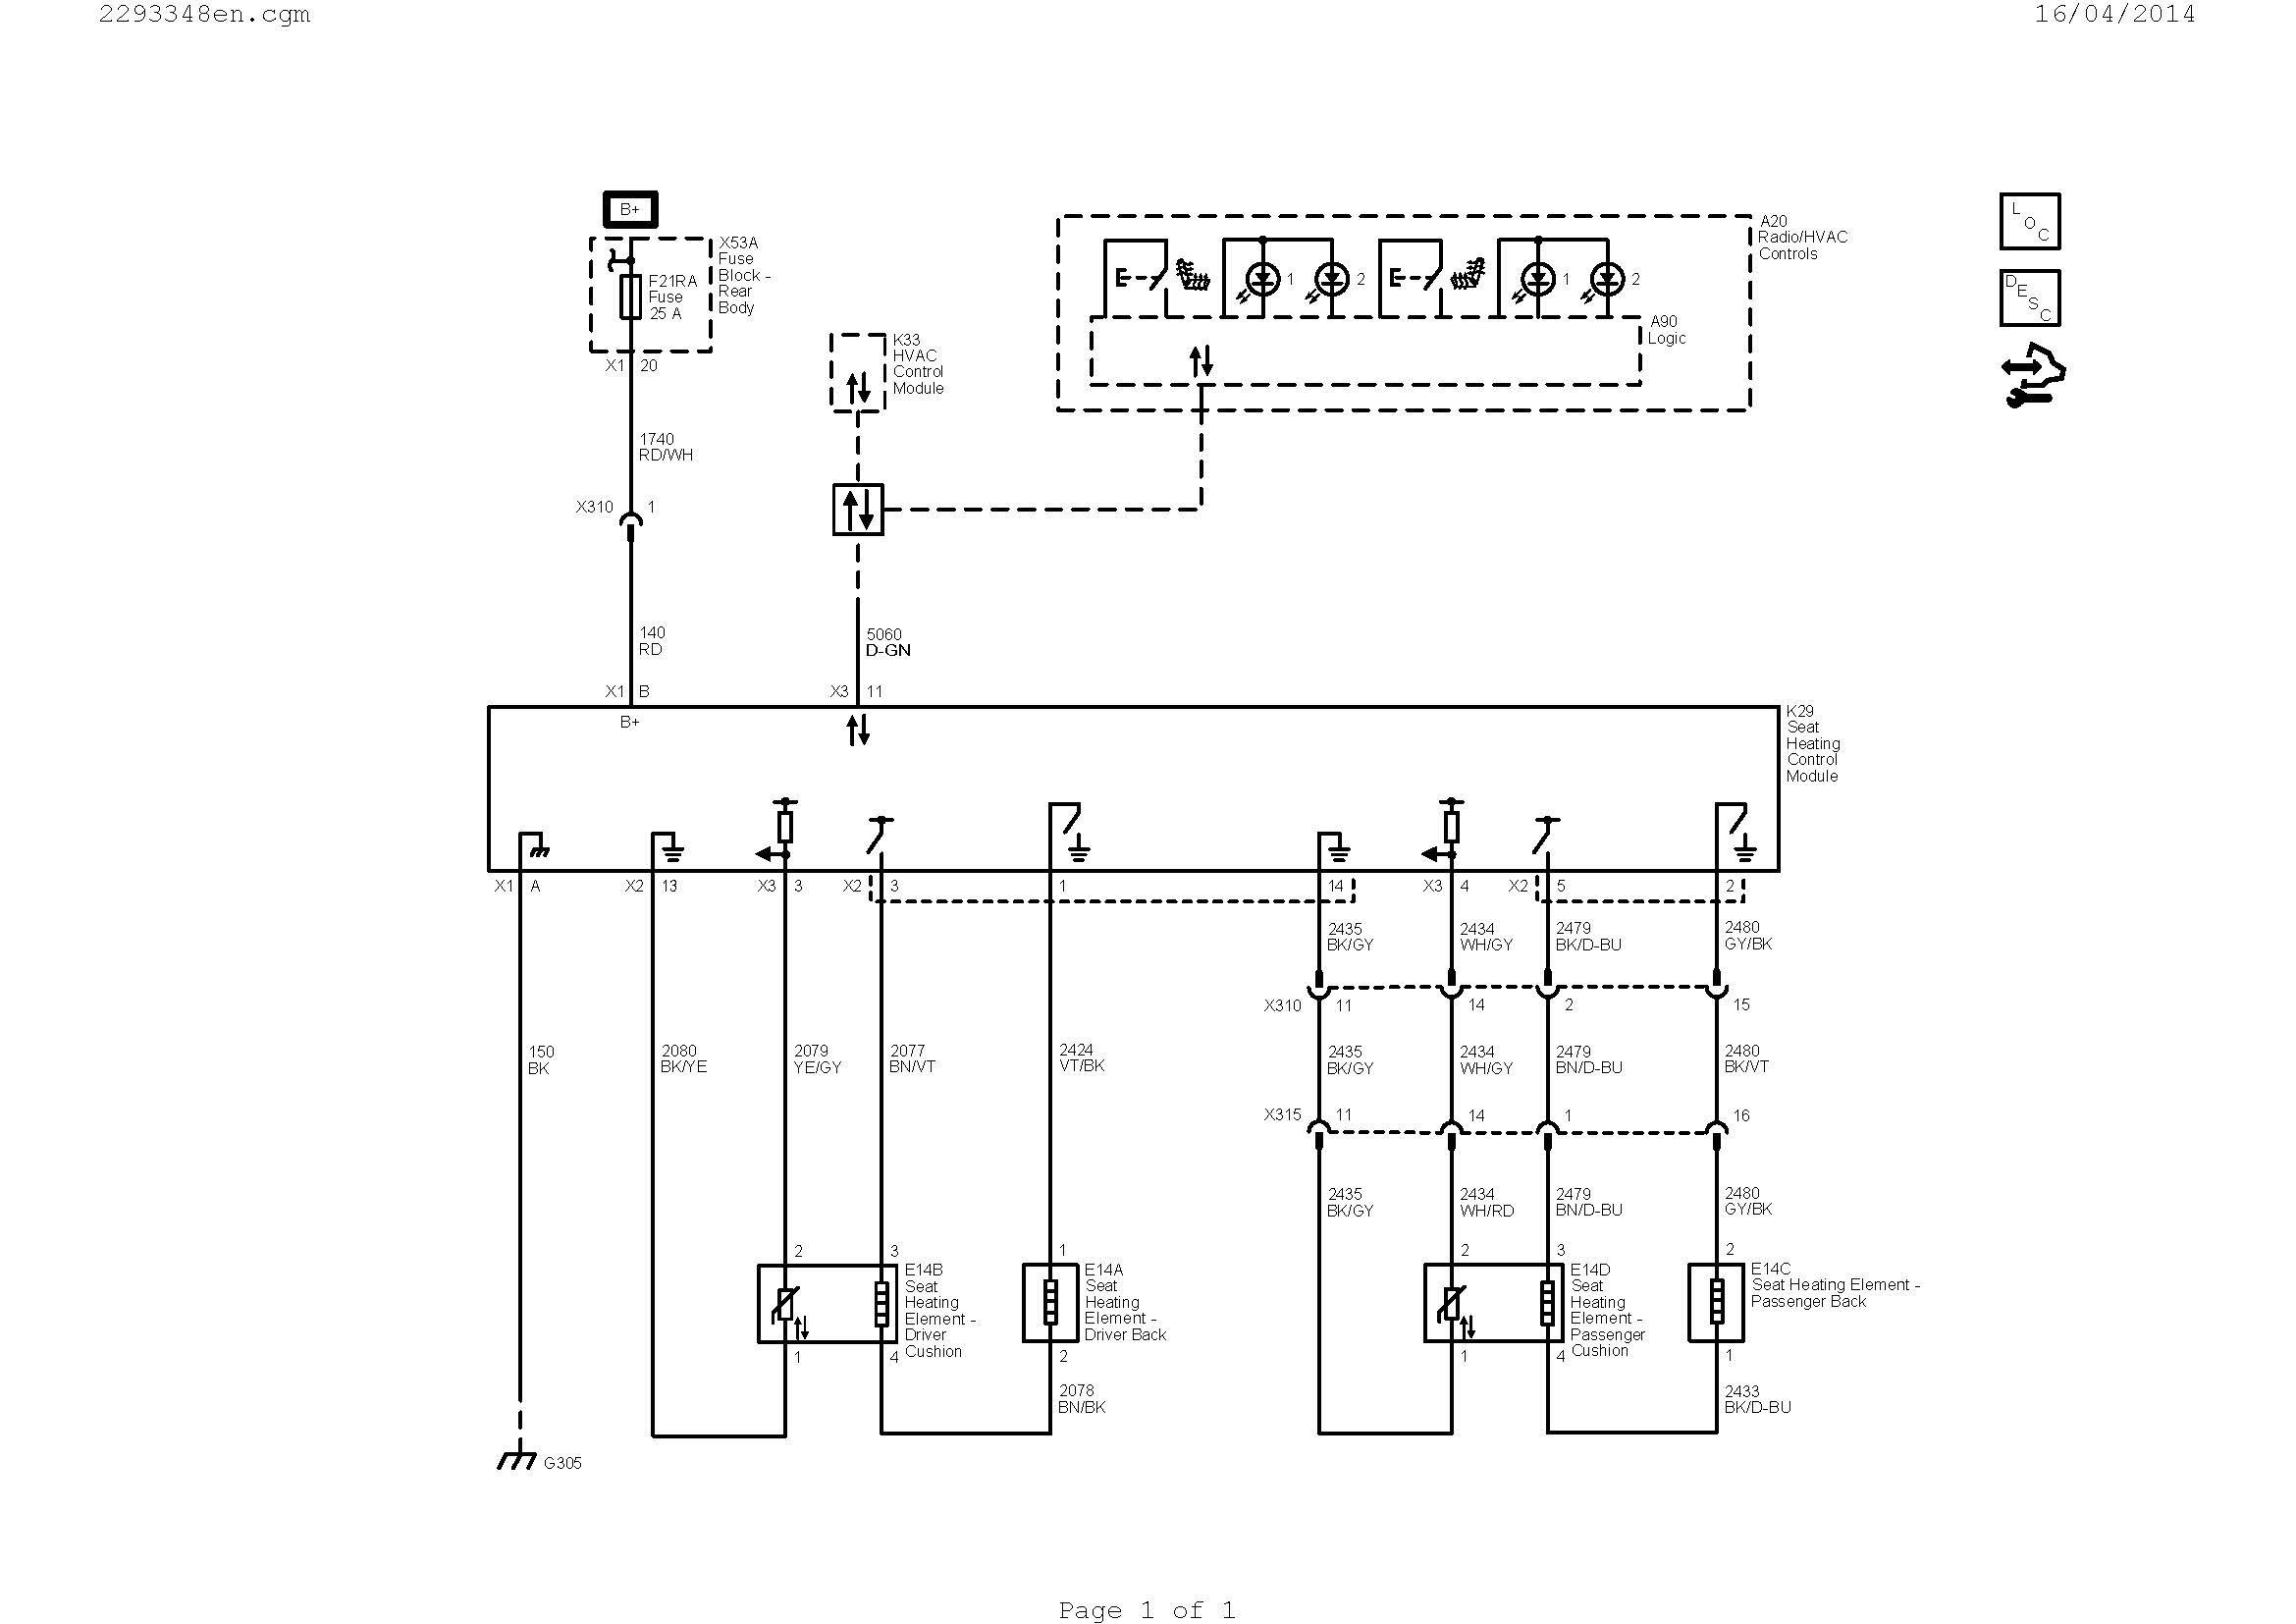 ac unit wiring diagram Collection-hvac wiring diagram Collection Wiring A Ac Thermostat Diagram New Wiring Diagram Ac Valid Hvac DOWNLOAD Wiring Diagram 5-i